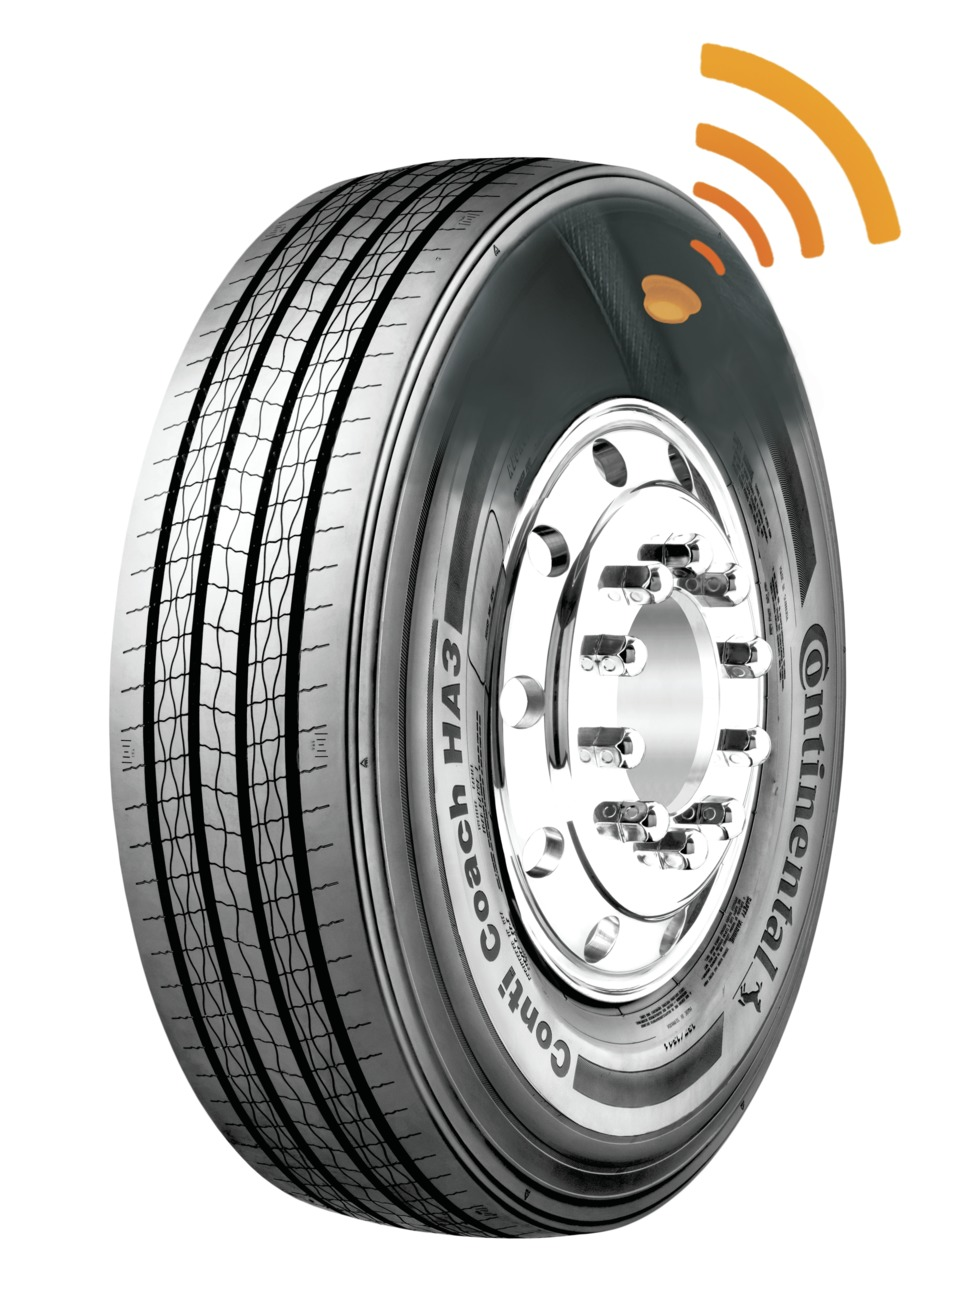 Continental Embedded Tire Pressure Monitoring Sensor